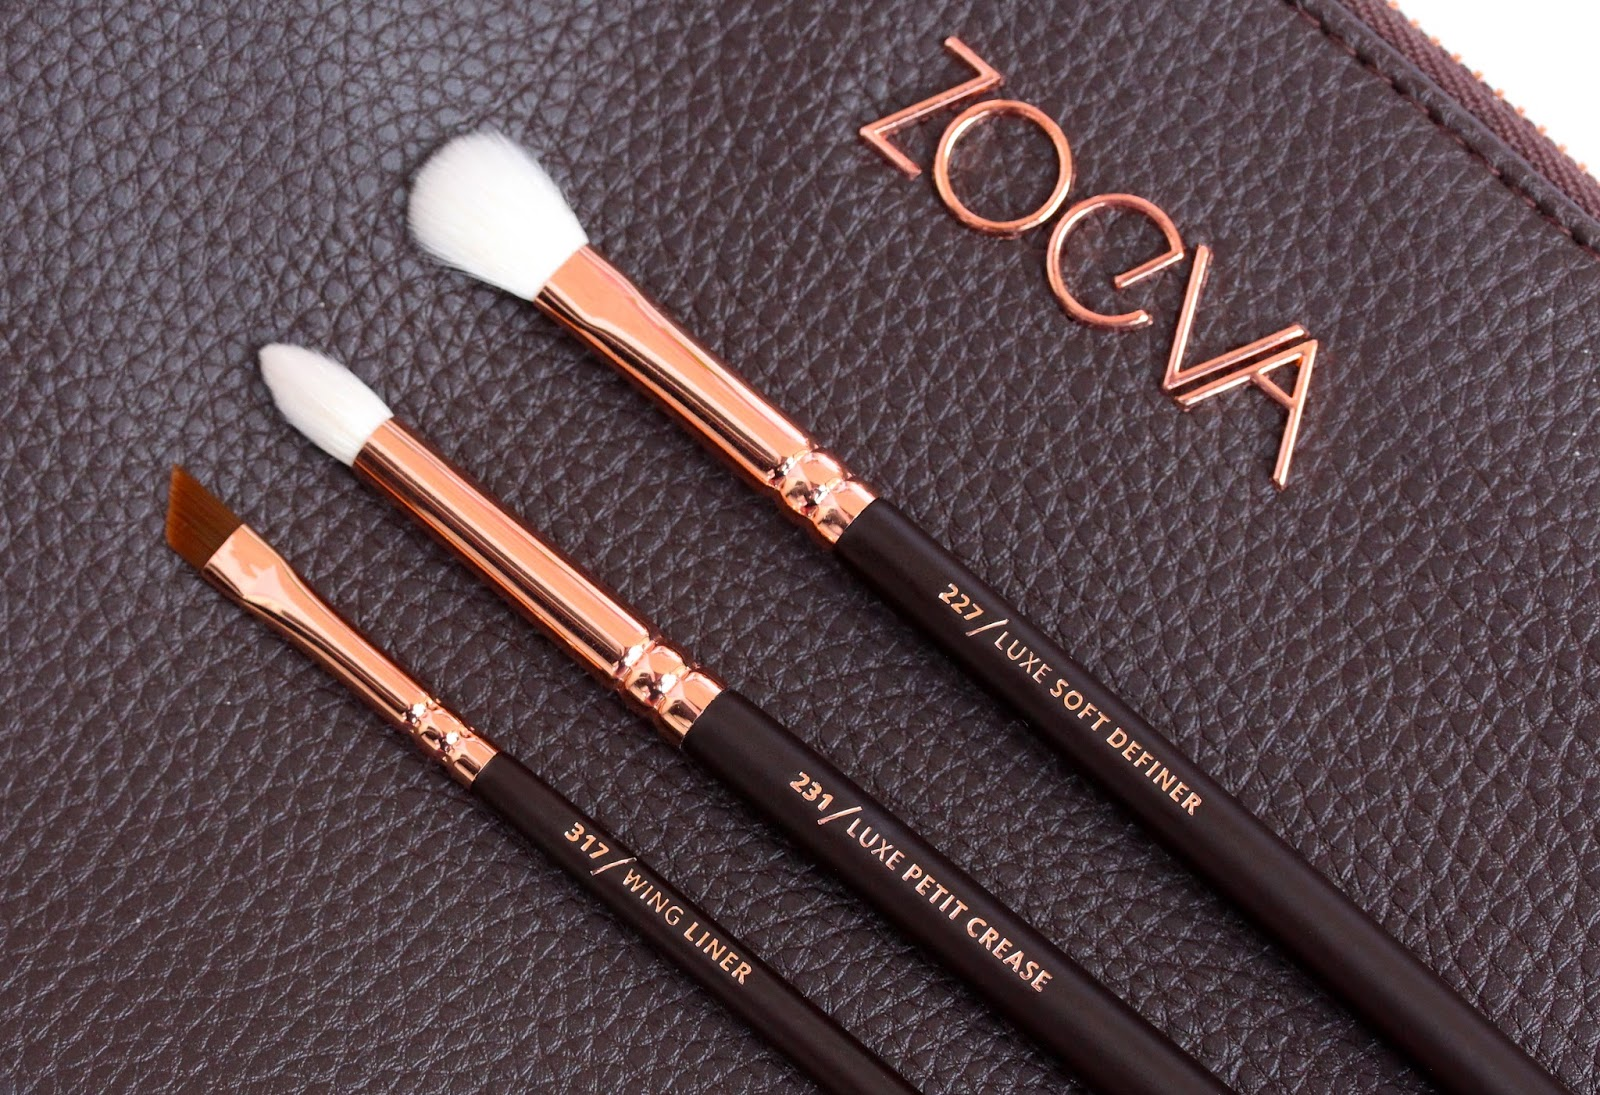 Zoeva Rose Golden Luxury Brush Set - eye brushes